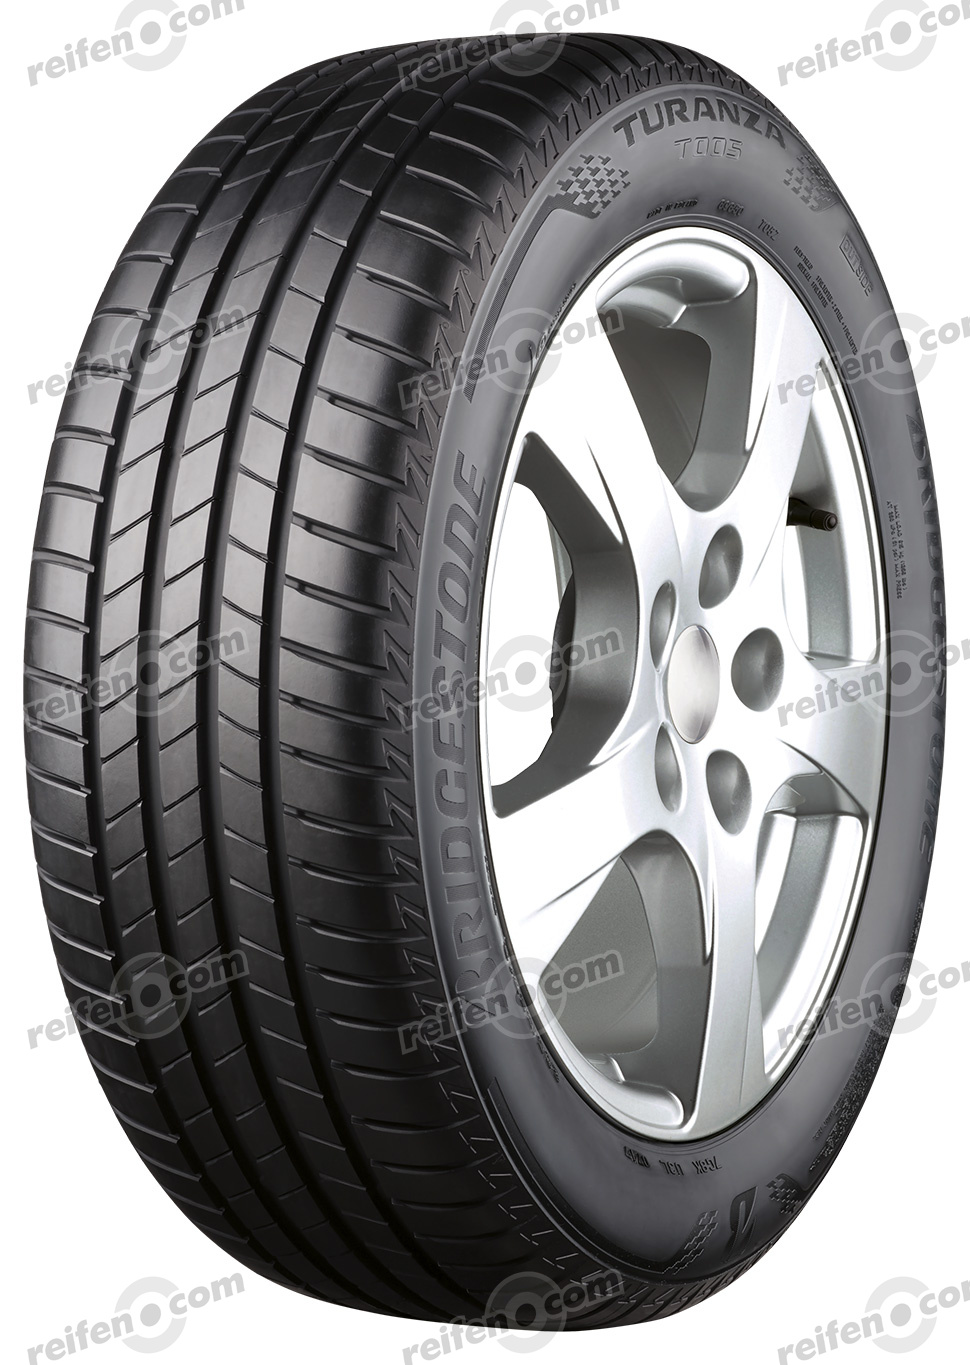 205/55 R16 91W Turanza T 005 AO A3 Demontage  Turanza T 005 AO A3